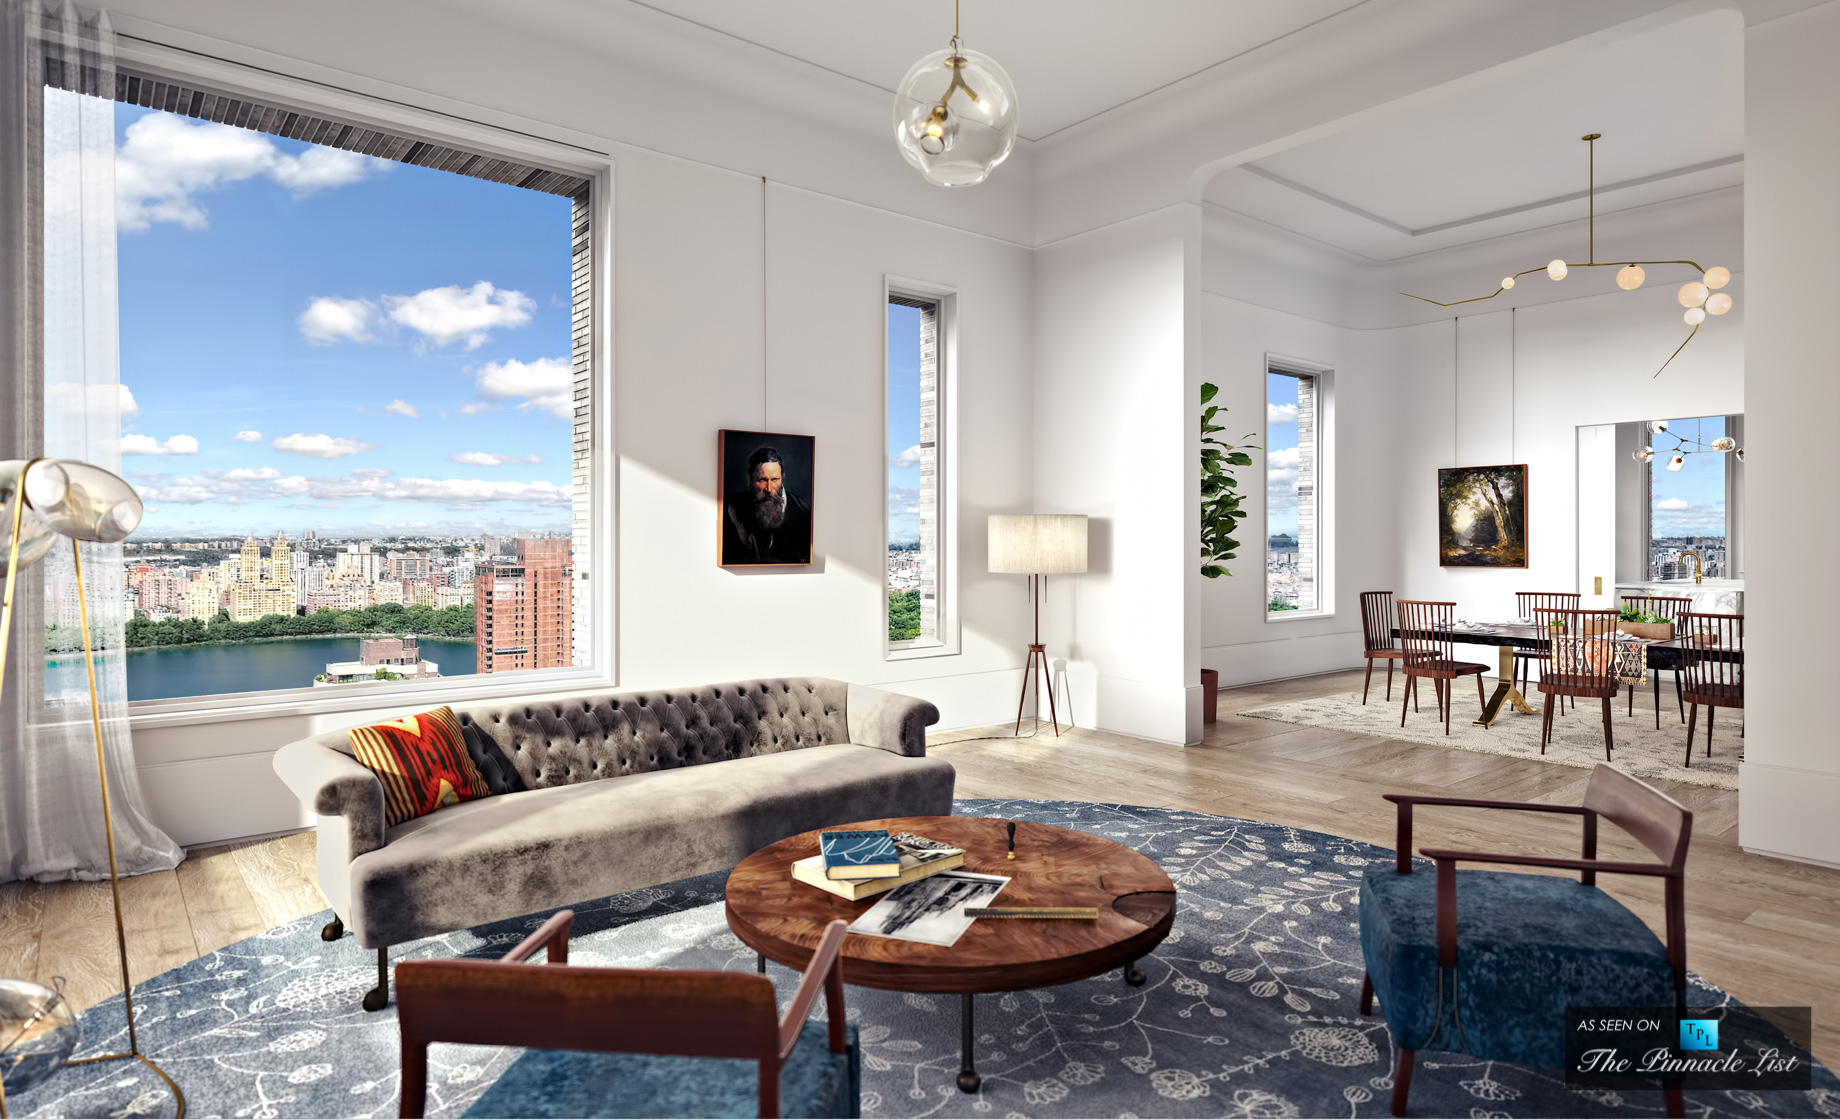 180 EAST 88th STREET - New York Luxury Condos